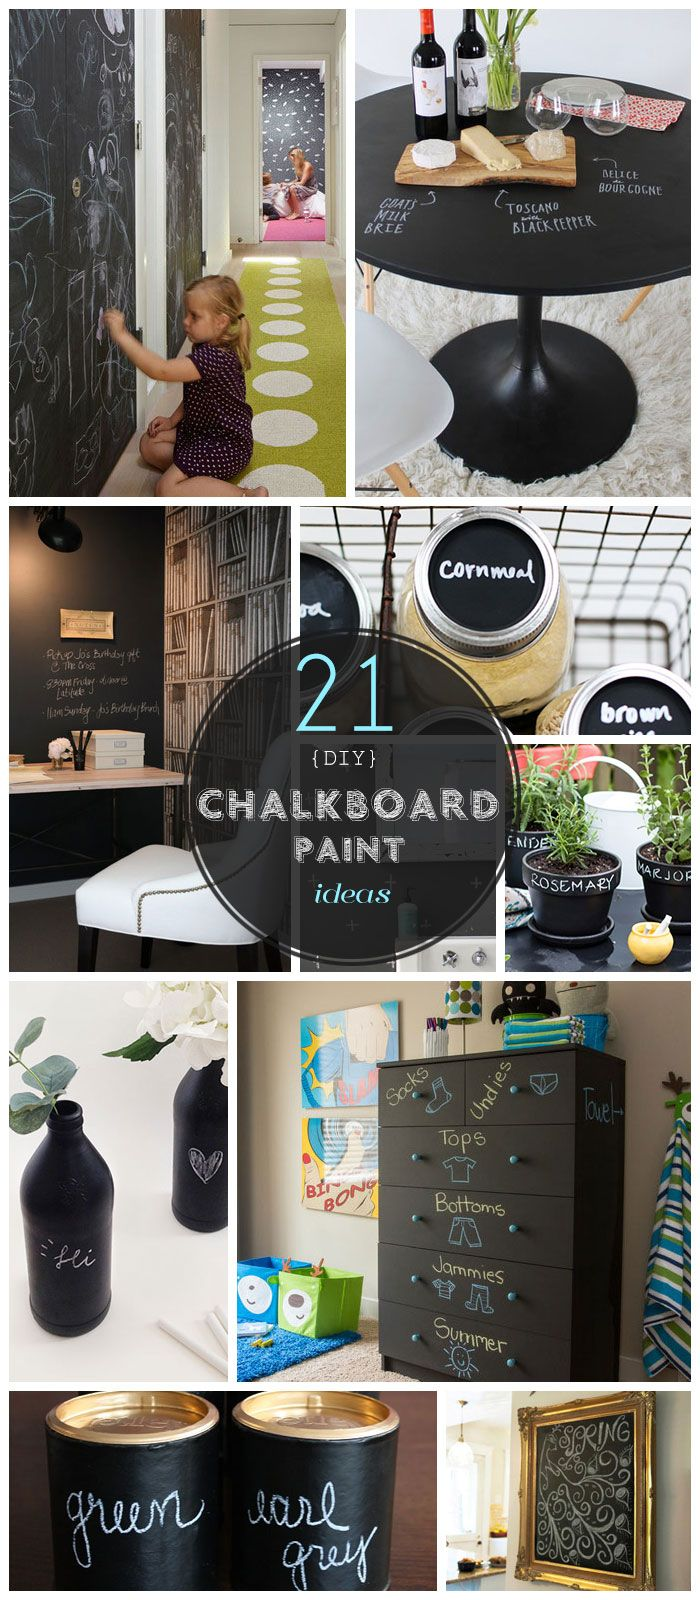 21 diy chalkboard paint ideas that are brilliantly creative for Chalkboard paint decorating ideas